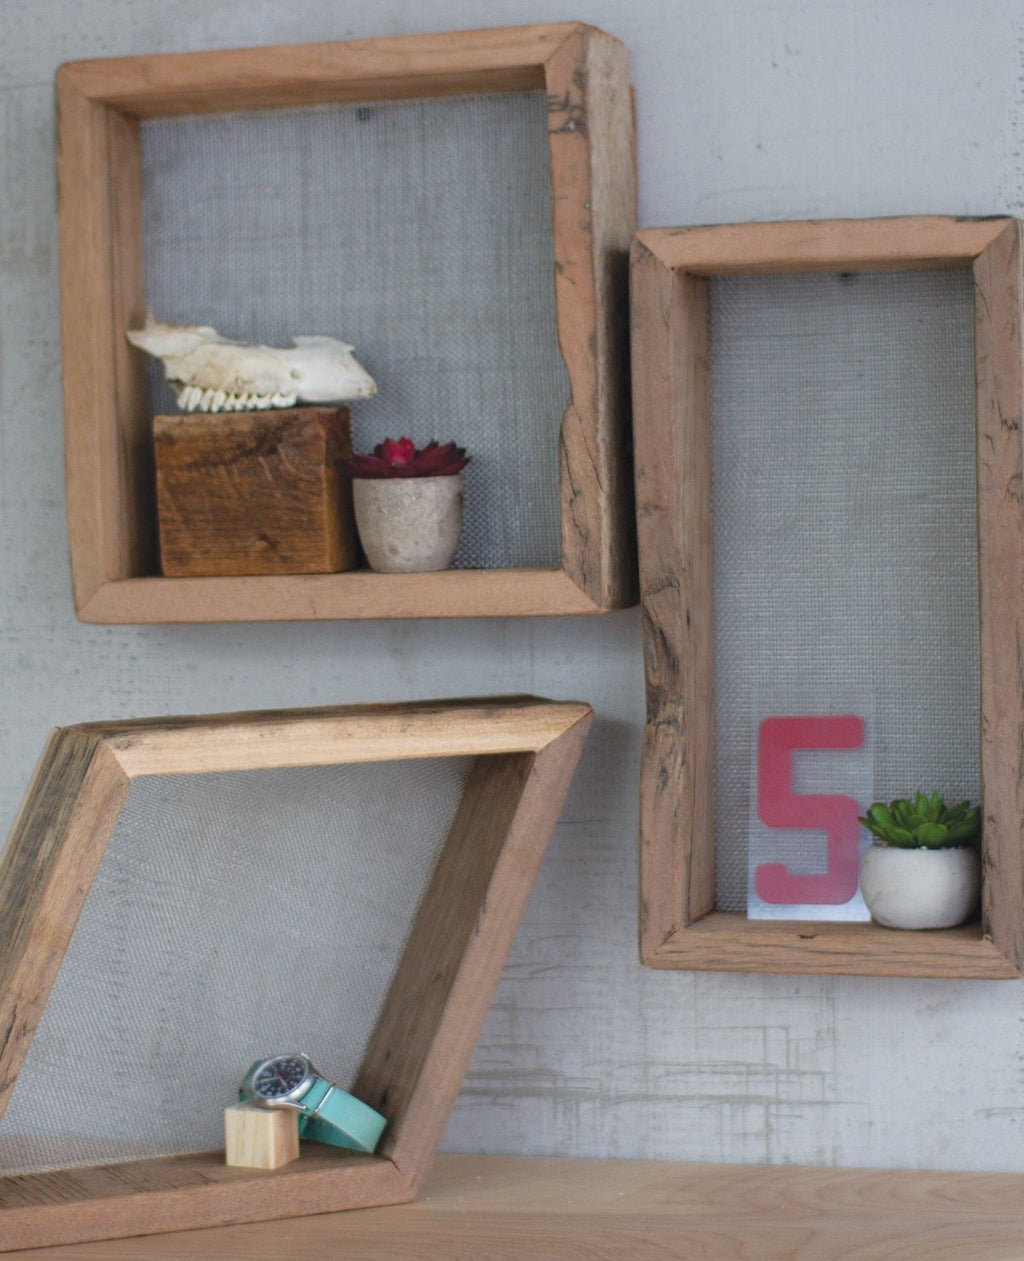 Recycled Wood Shelves With Wire Mesh